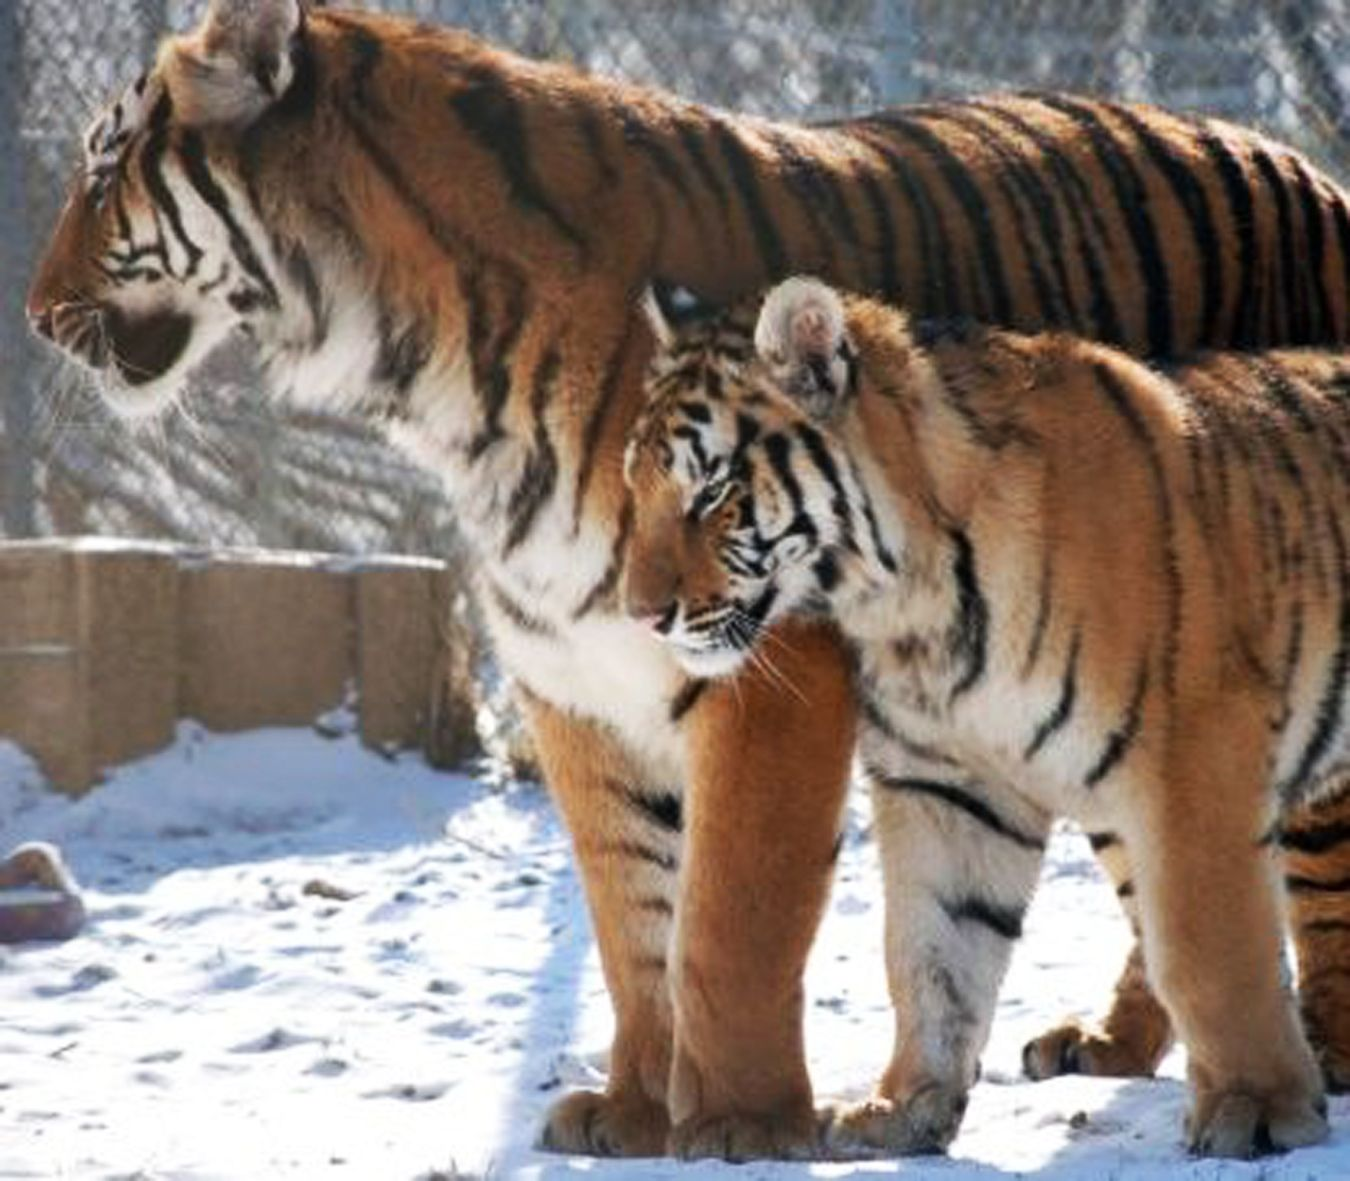 Ohio Rescue Video Tigers In America With Images Rescue Big Cat Rescue Big Cats